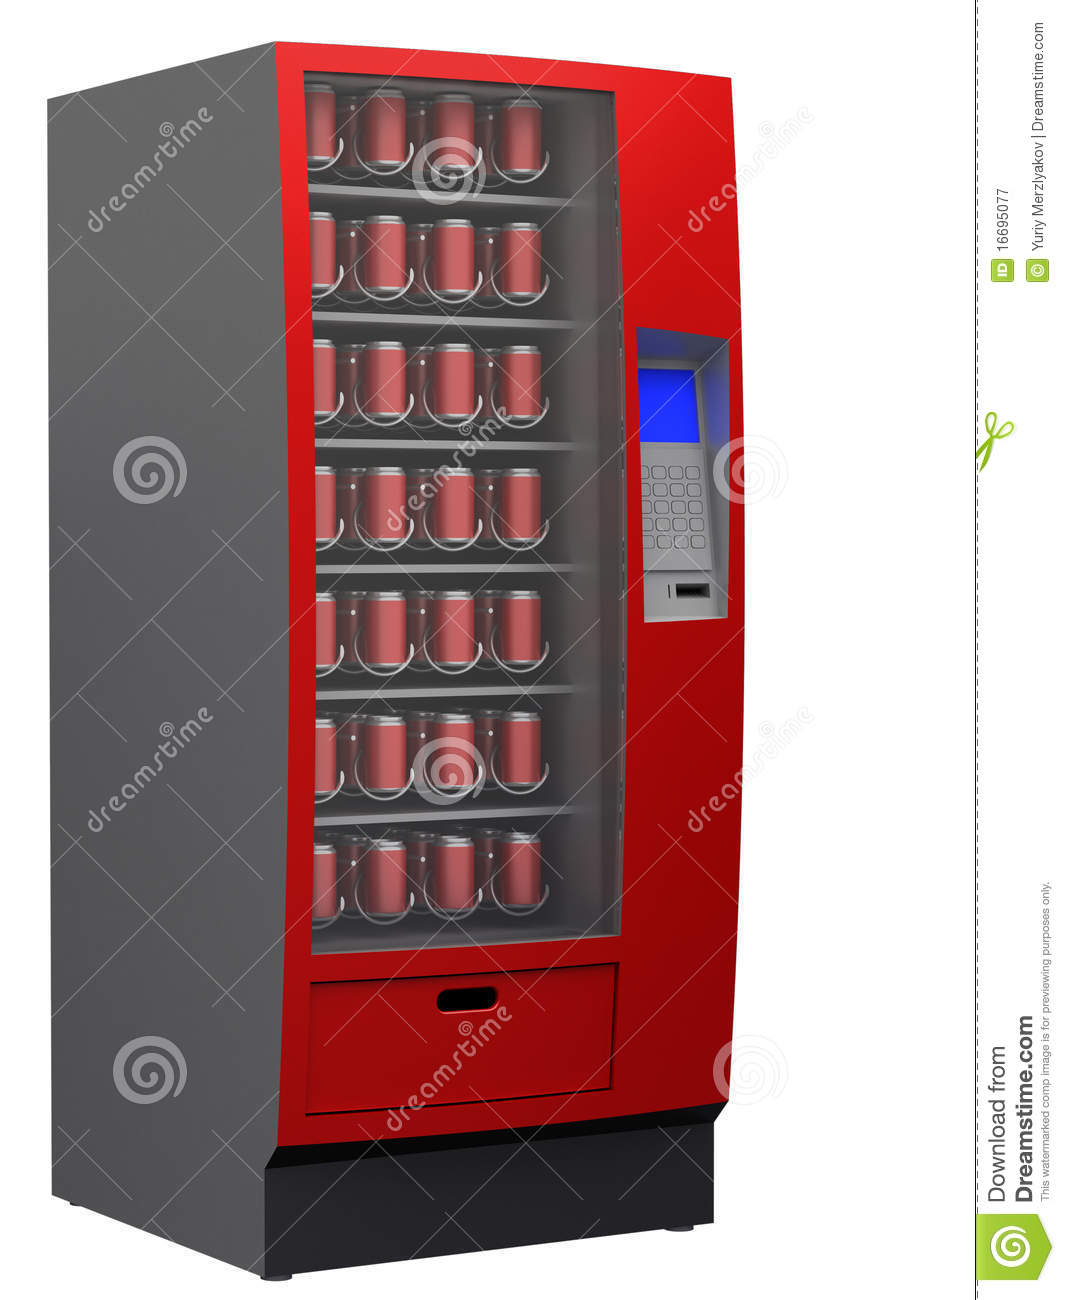 Vending Machine Royalty Free Stock Photography Image